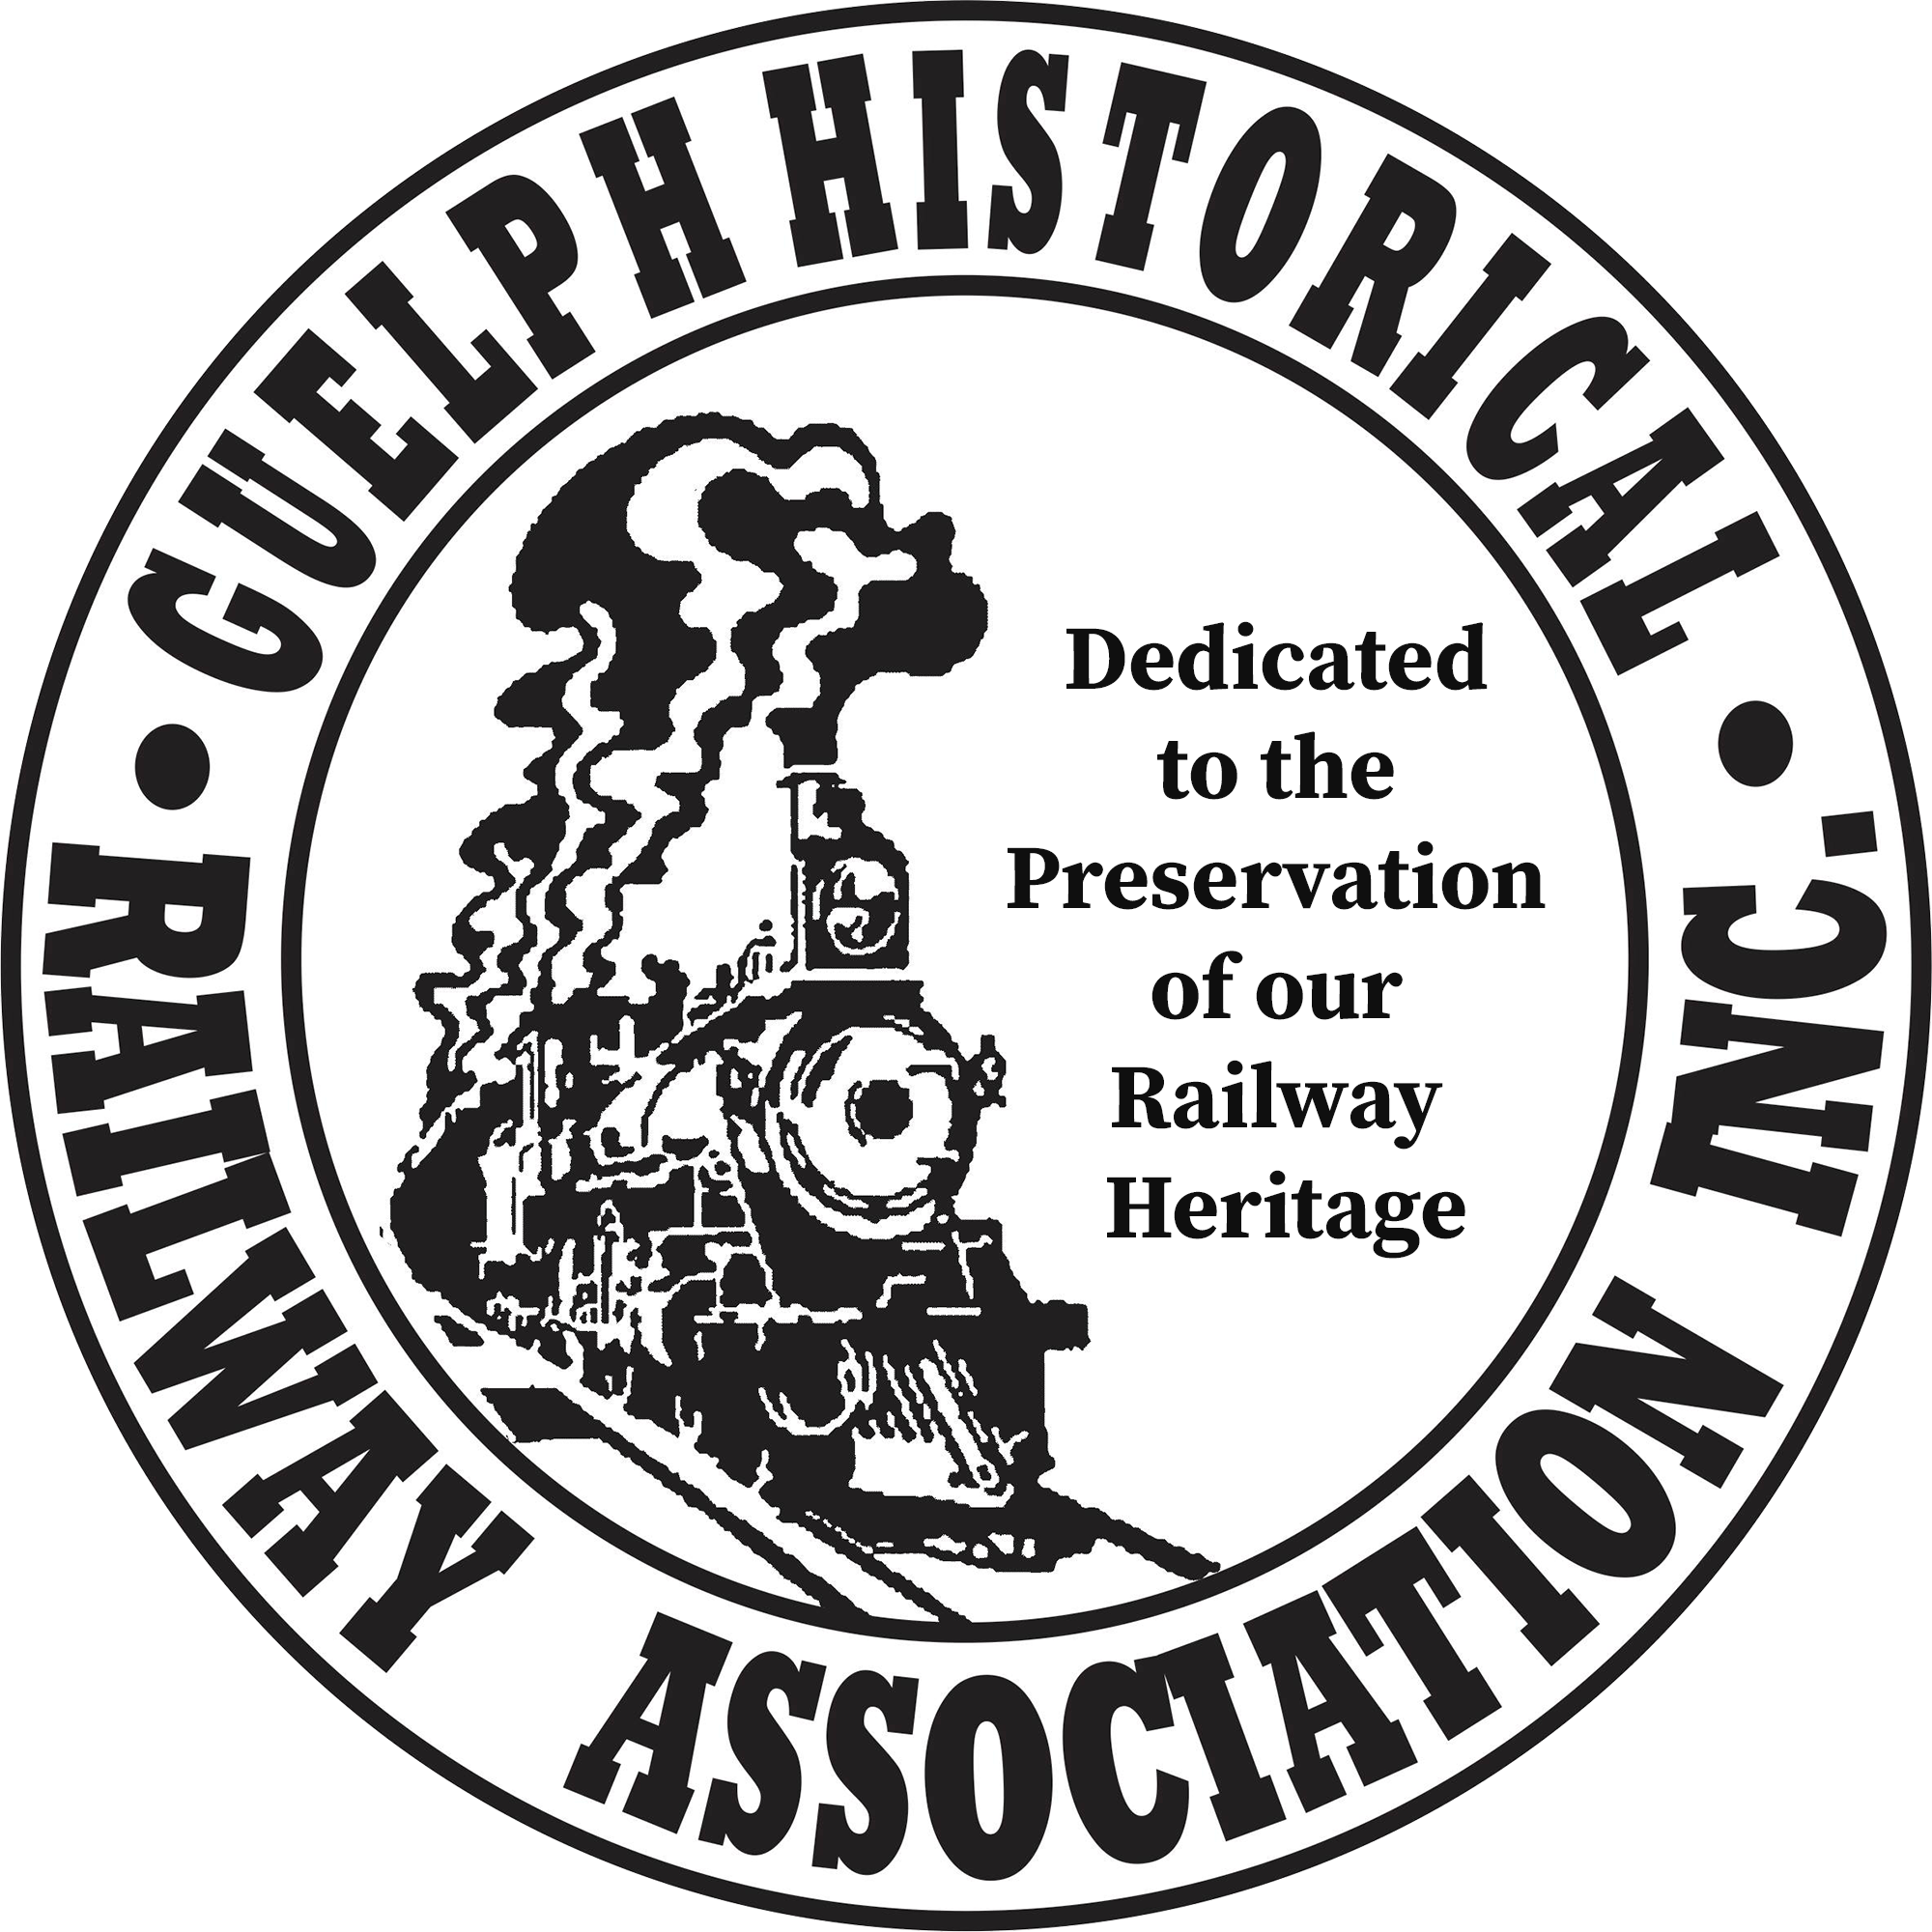 The Guelph Historical Railway Association